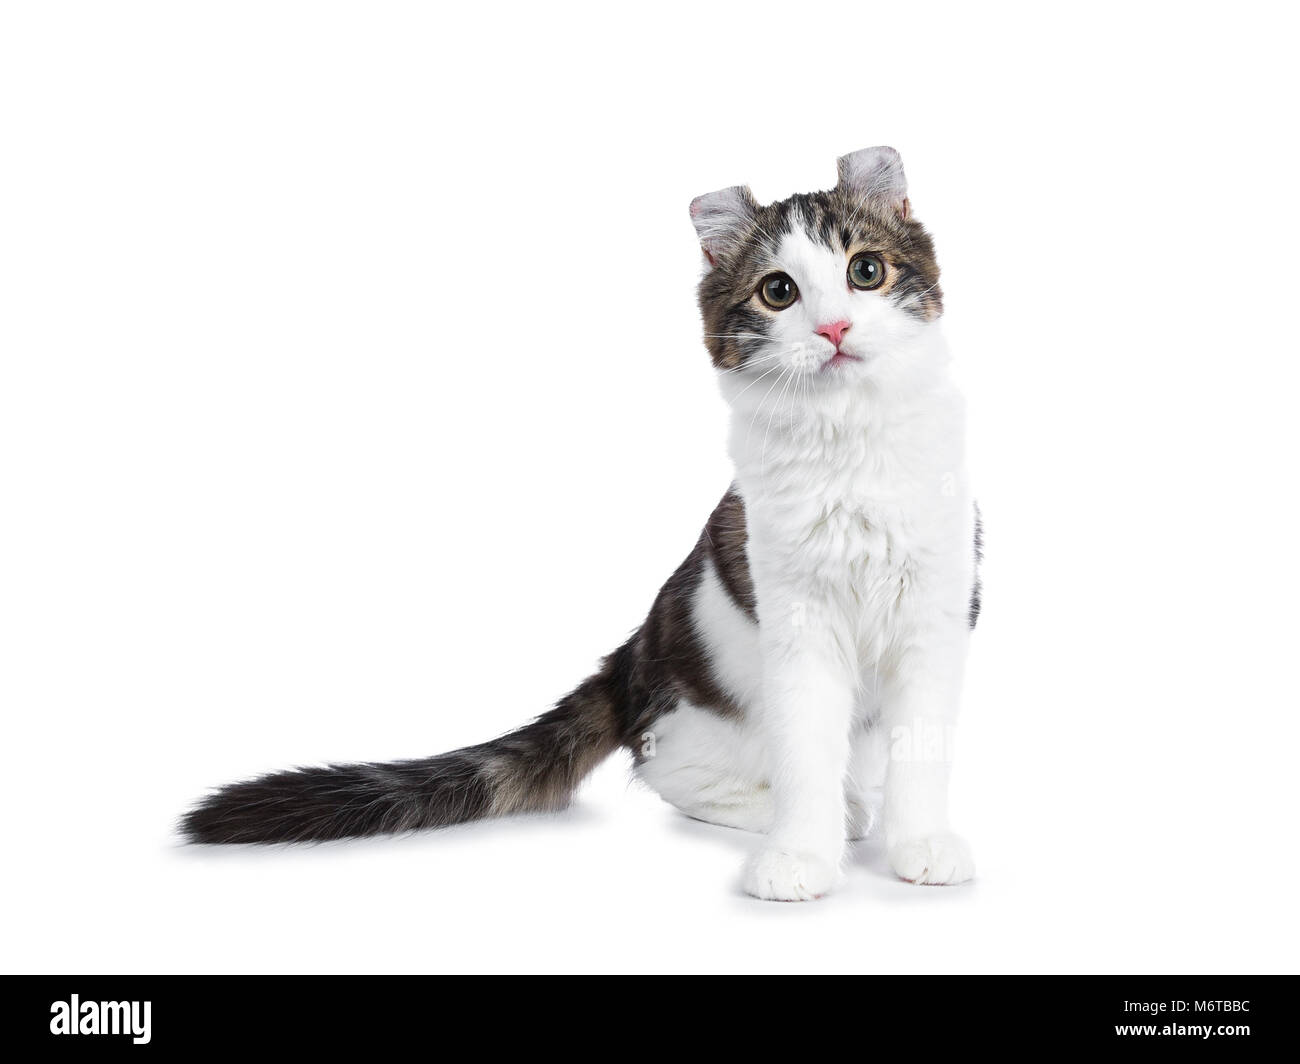 Black tabby with white American Curl cat / kitten standing facing the camera looking curious isolated on white background. - Stock Image